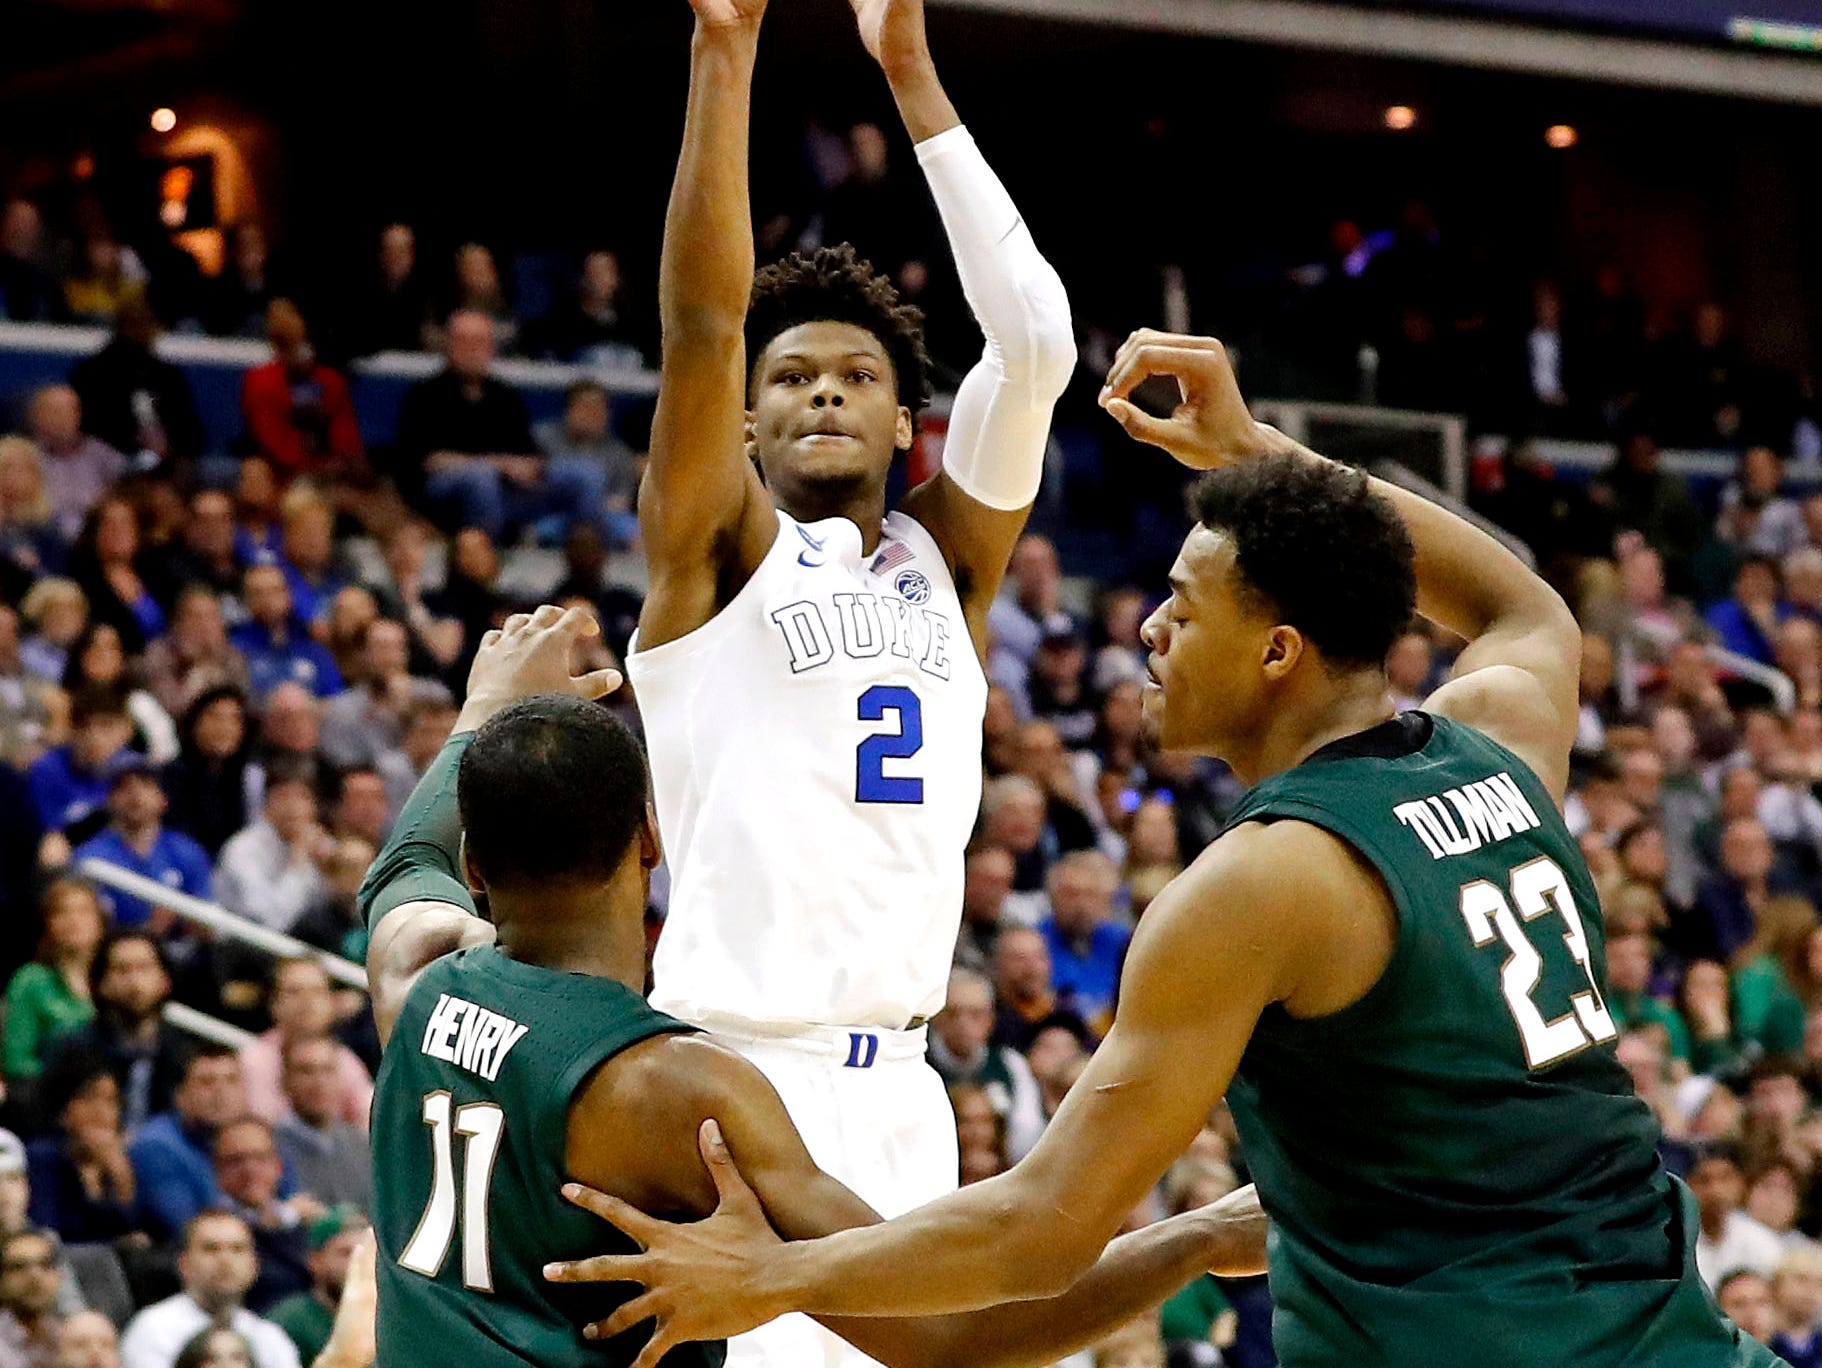 Duke Blue Devils forward Cam Reddish (2) shoots the ball against Michigan State Spartans forward Aaron Henry (11) and forward Xavier Tillman (23) during the first half in the championship game of the east regional of the 2019 NCAA Tournament at Capital One Arena.